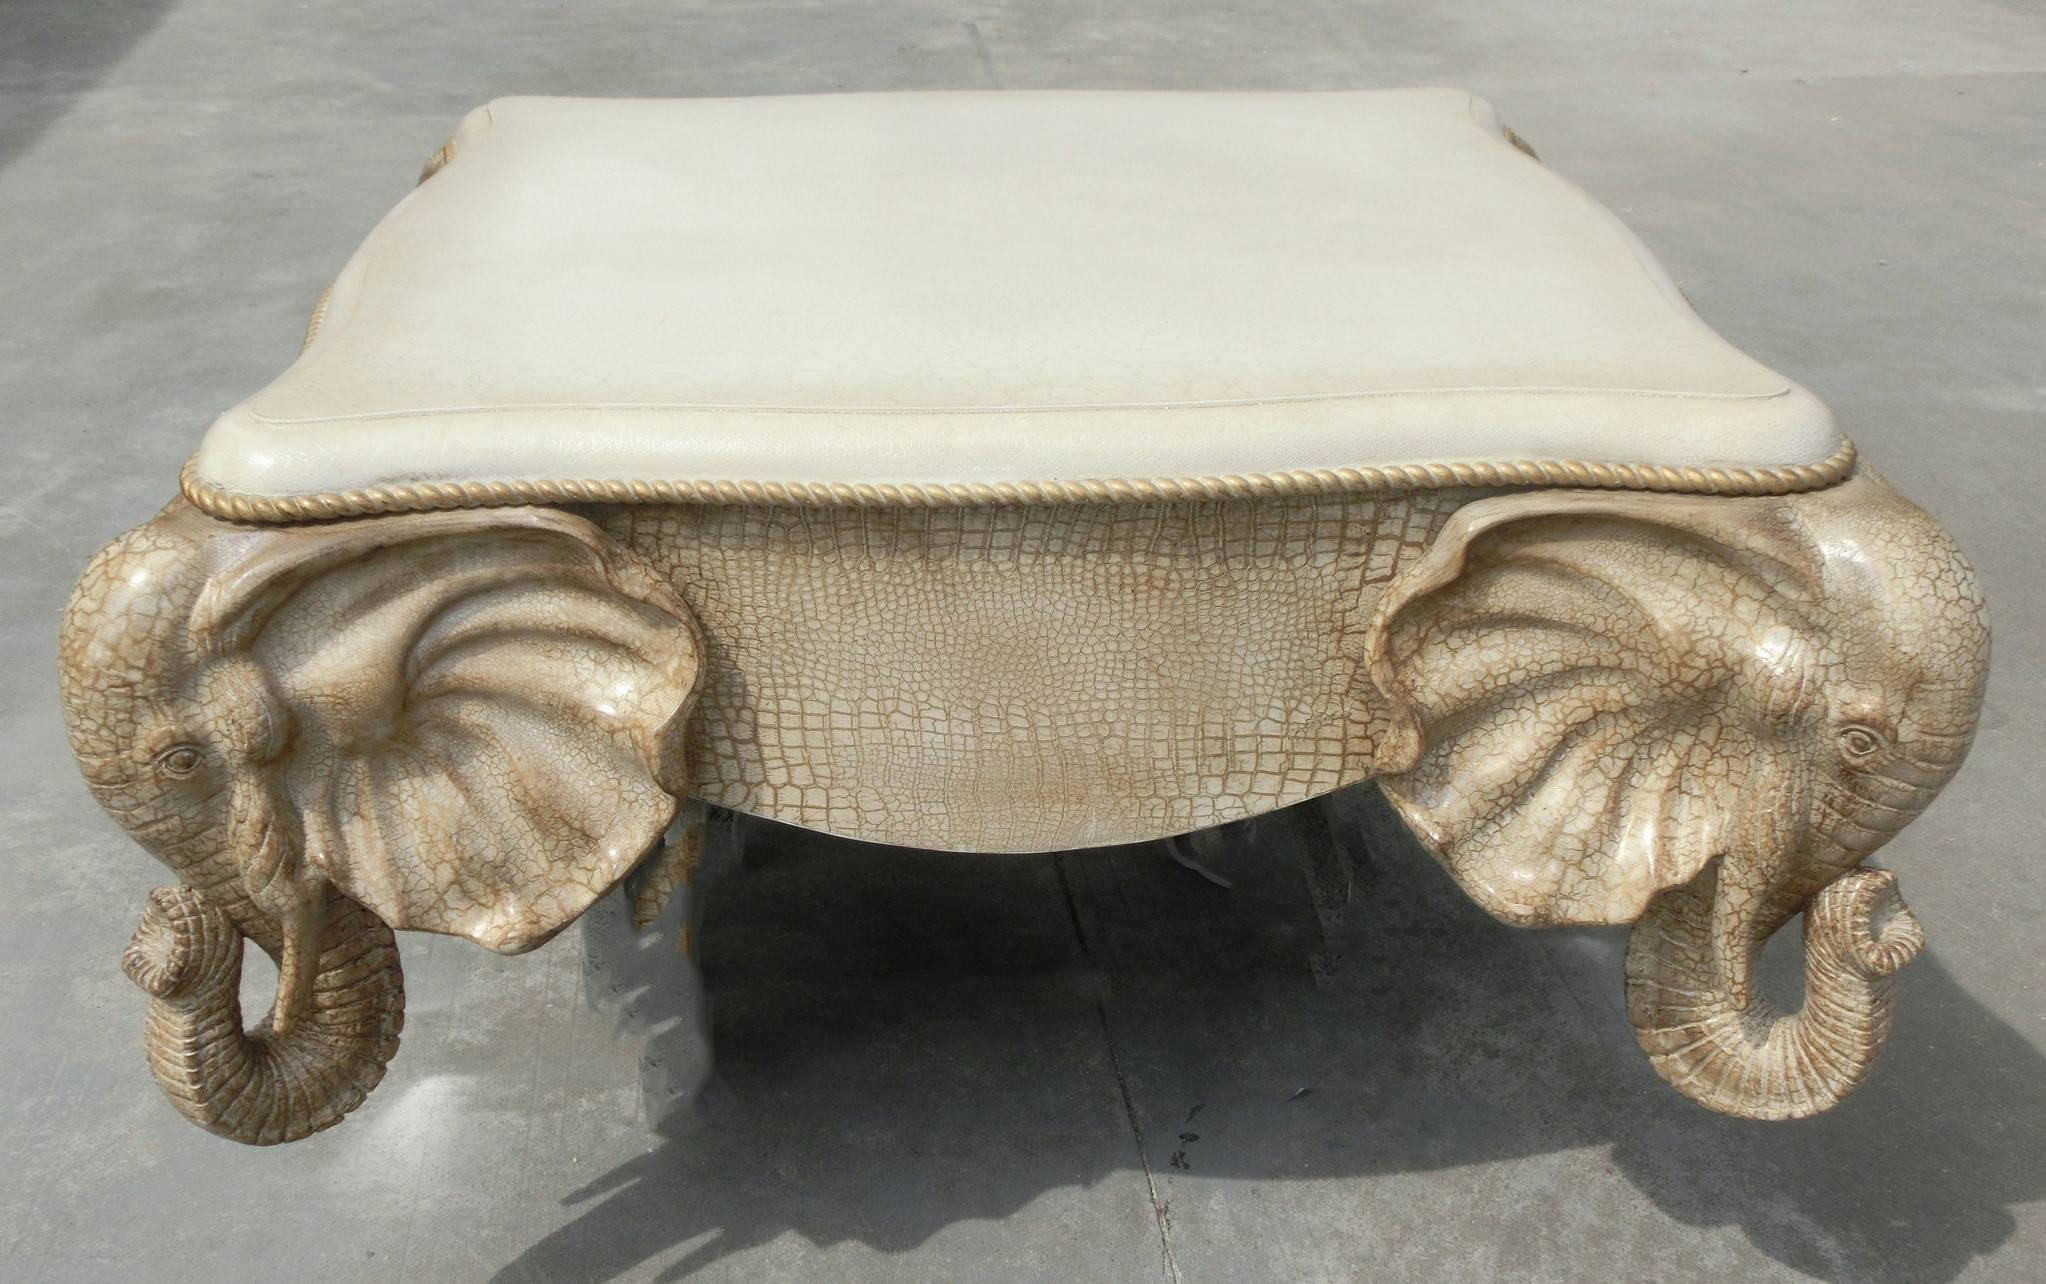 Furniture. Elephant Coffee Table Ideas: Golden Metal Antique regarding Elephant Coffee Tables With Glass Top (Image 20 of 30)